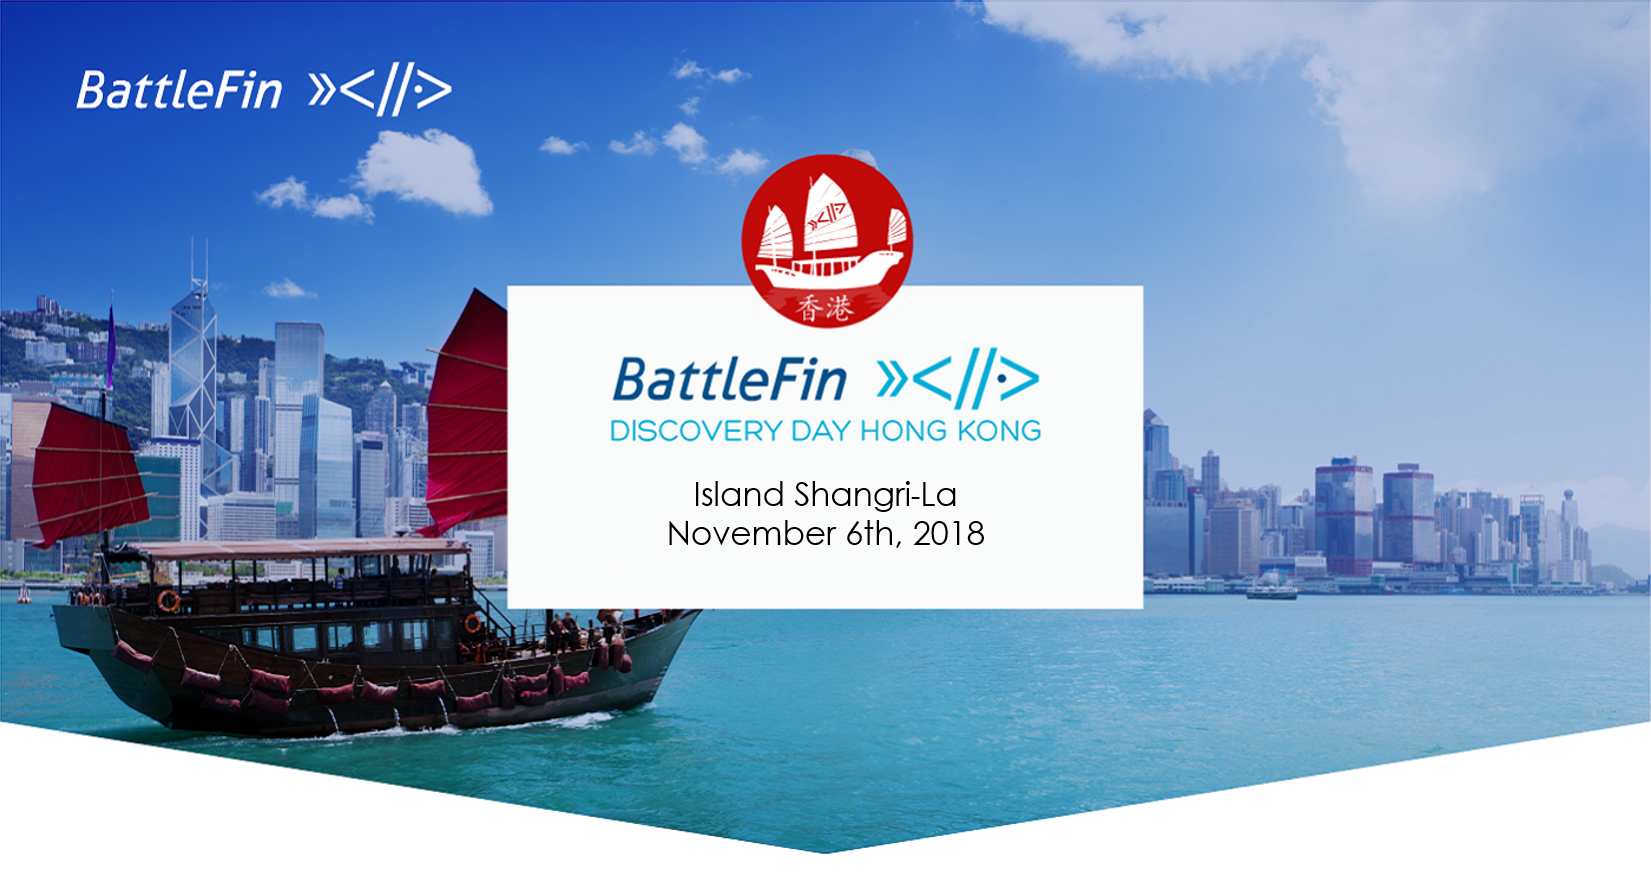 BattleFin-header_Hong Kong-02